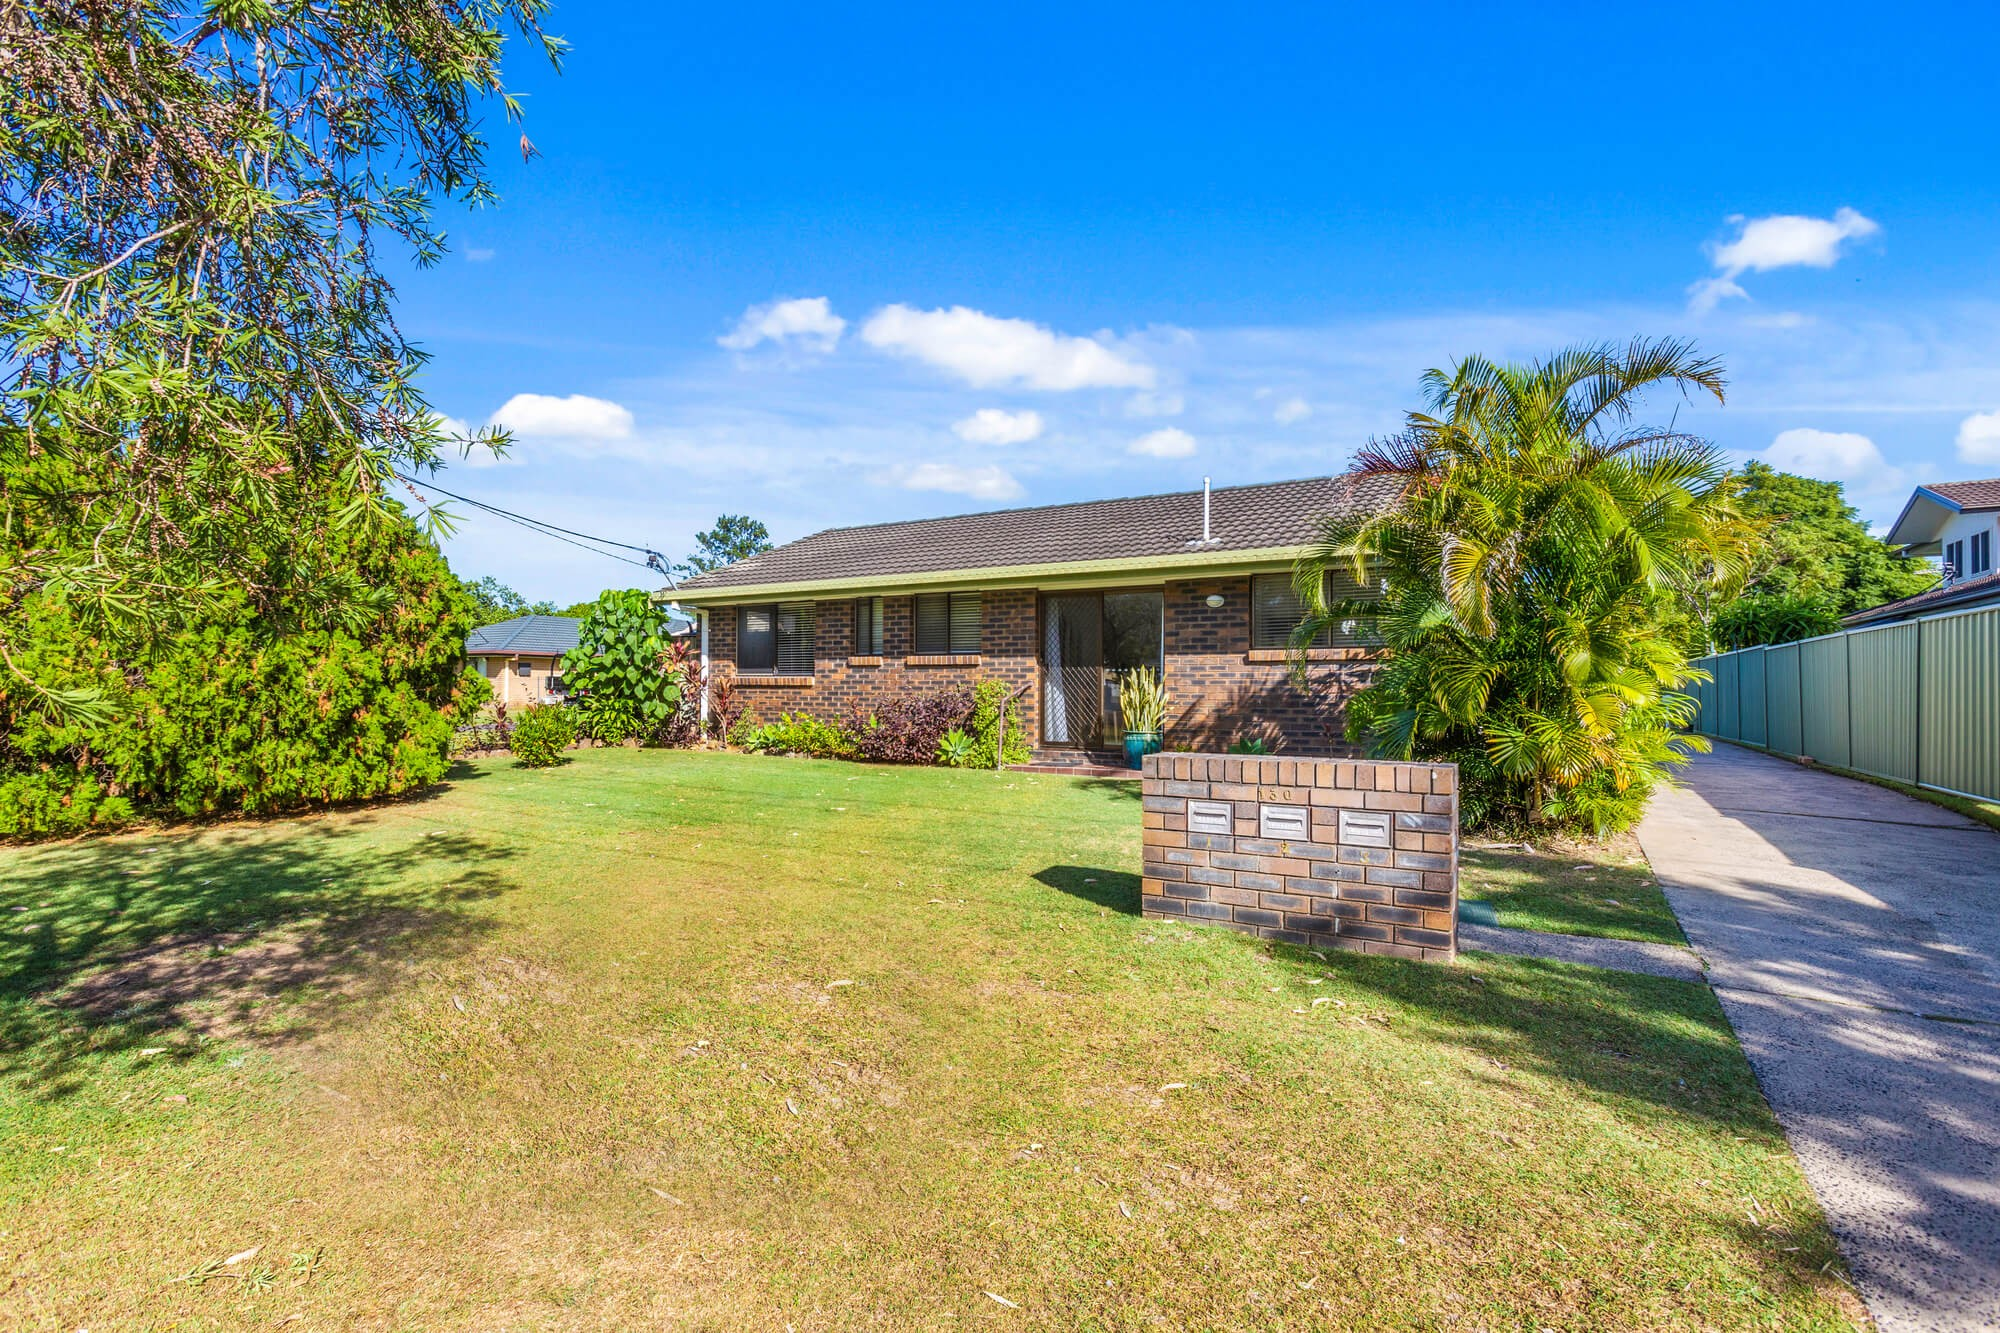 1/130 Jacaranda Avenue Tweed Heads West NSW 2485